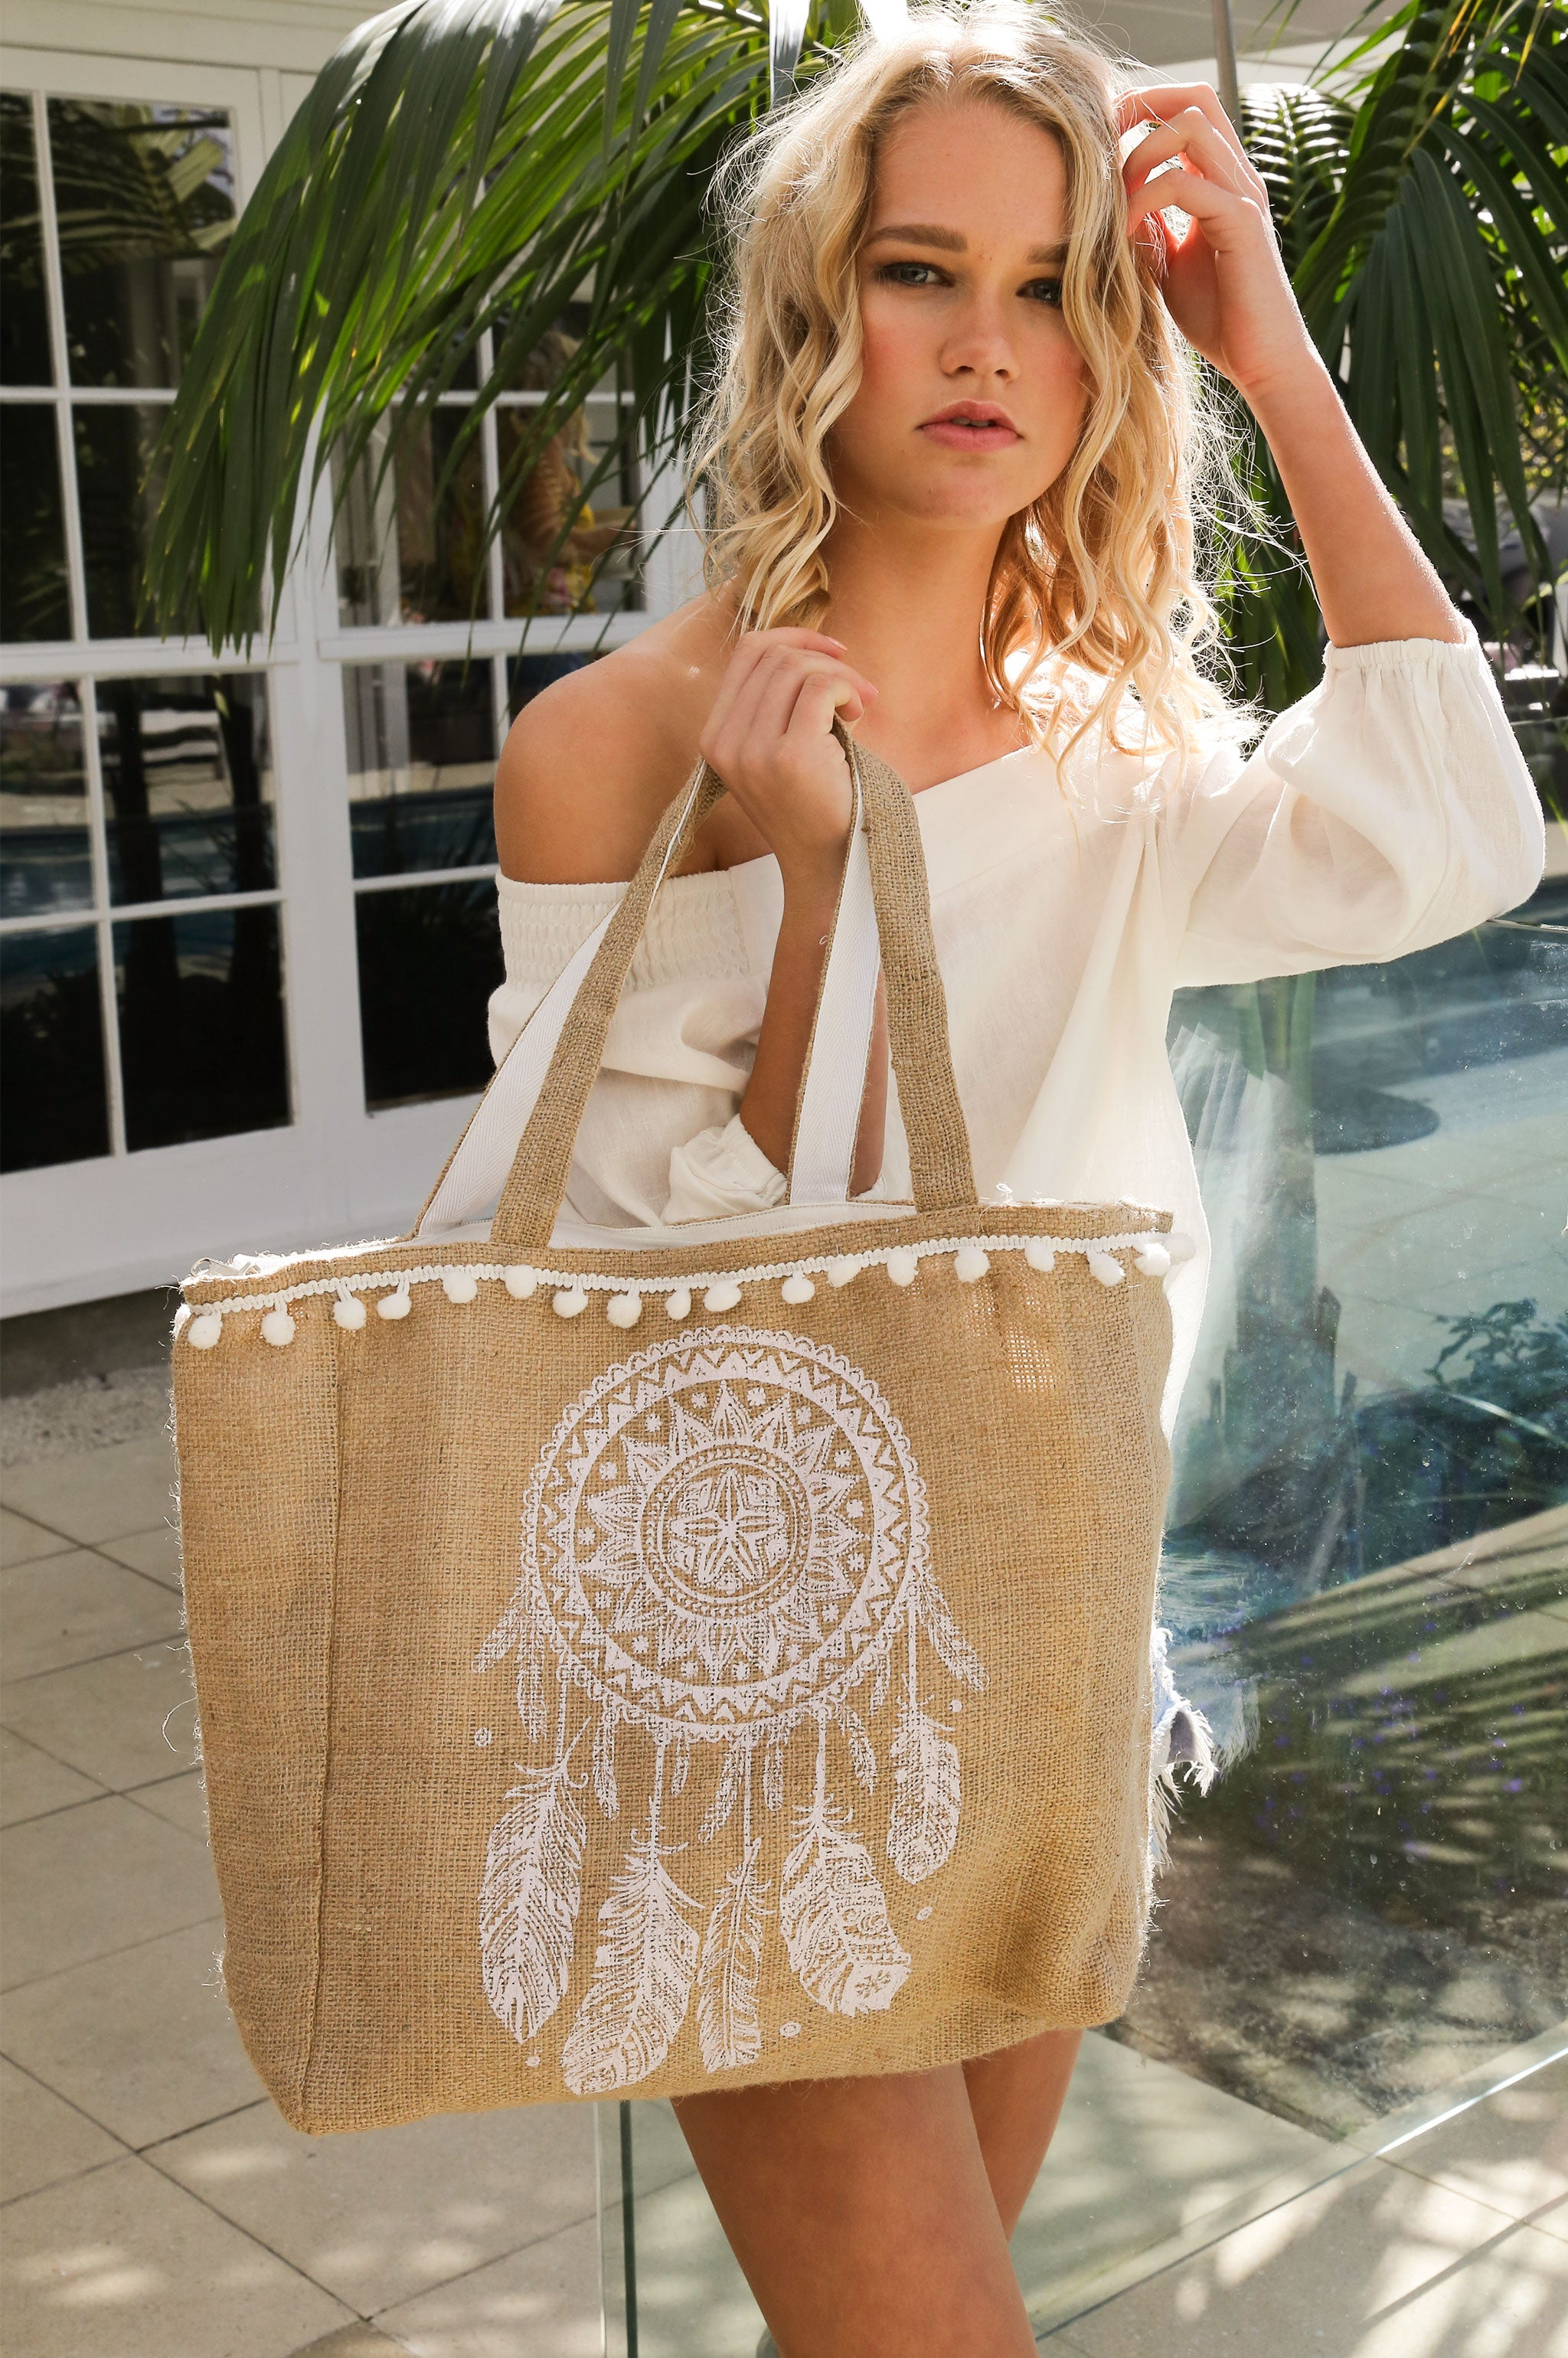 Lil Beach bag - pom pom dreamcatcher white